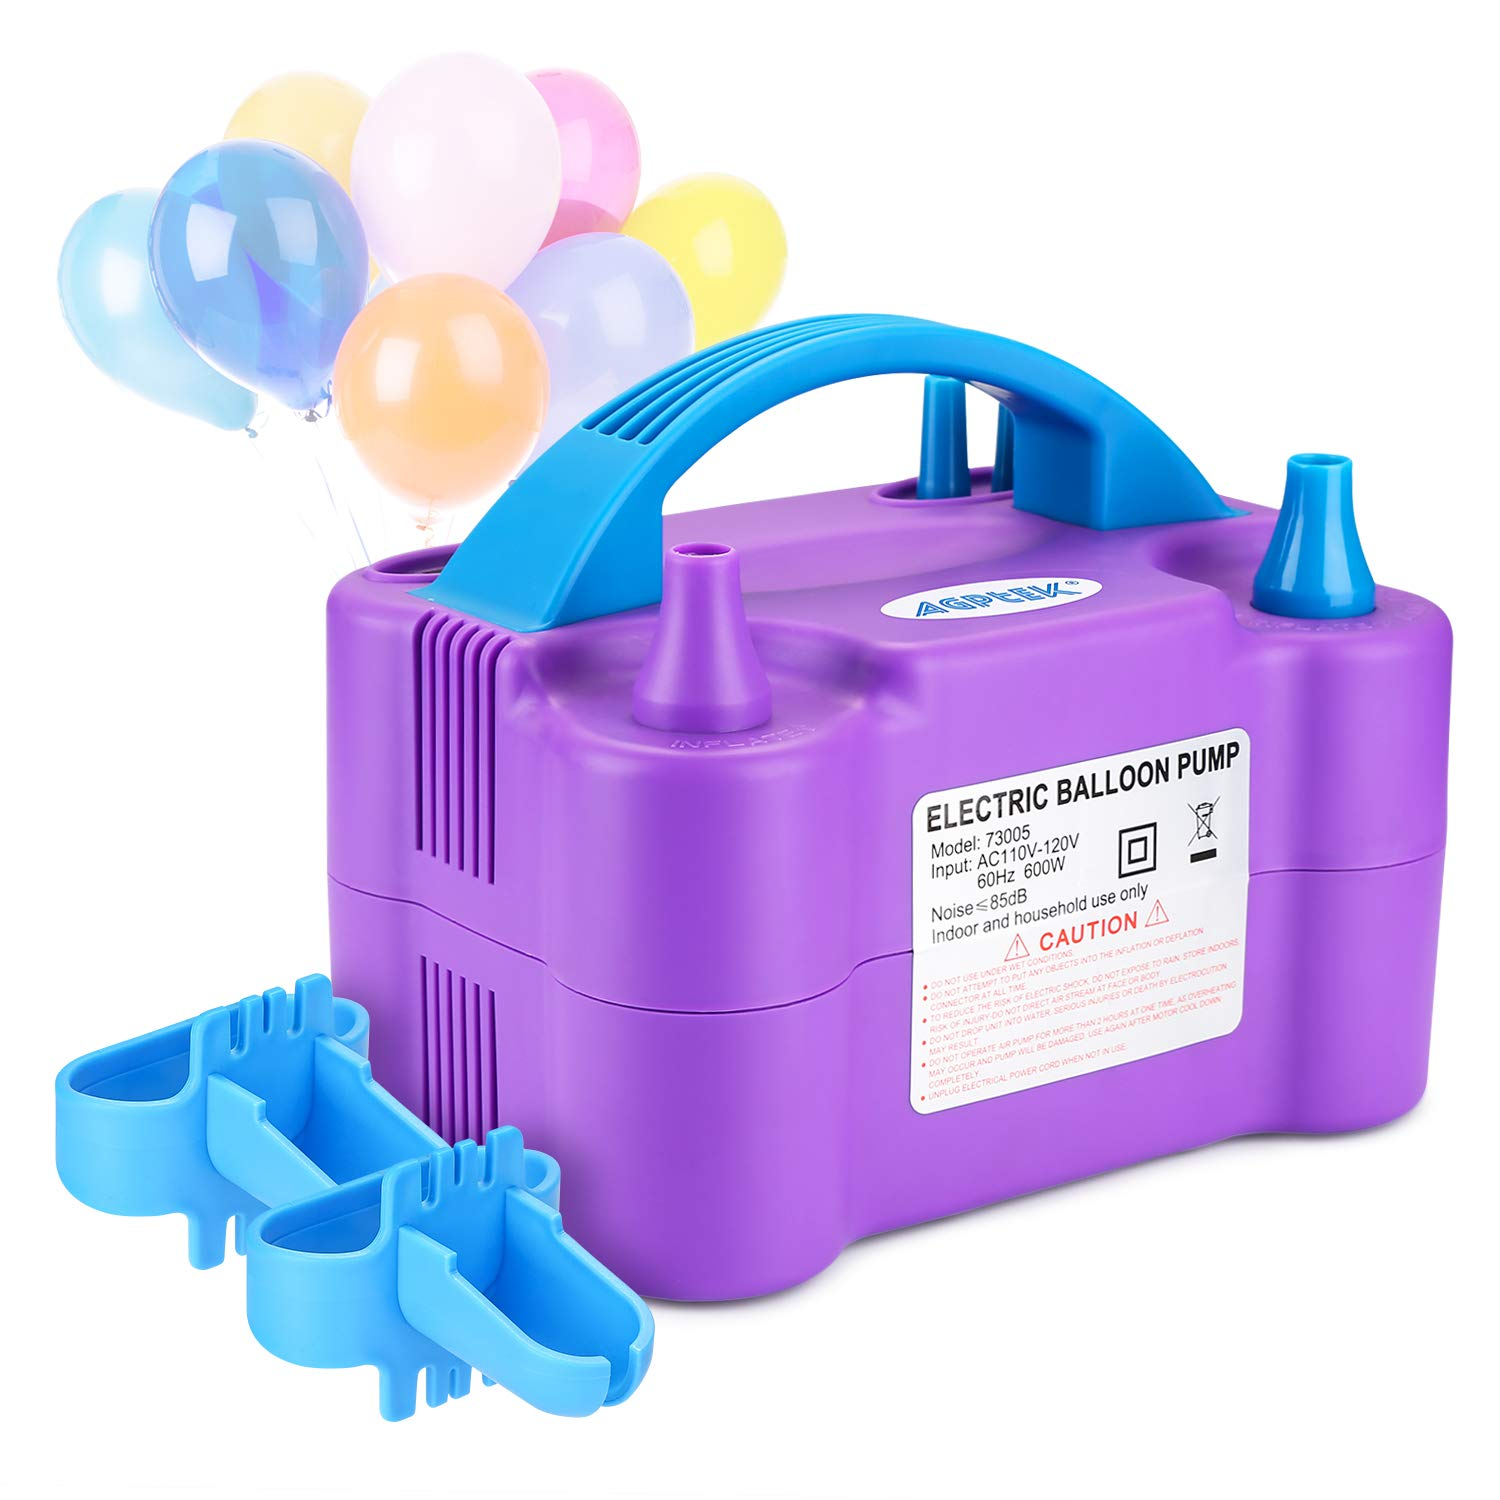 110V 600W Portable Dual Nozzle Inflator//Blower for Party Decoration AGPTEK Electric Air Balloon Pump